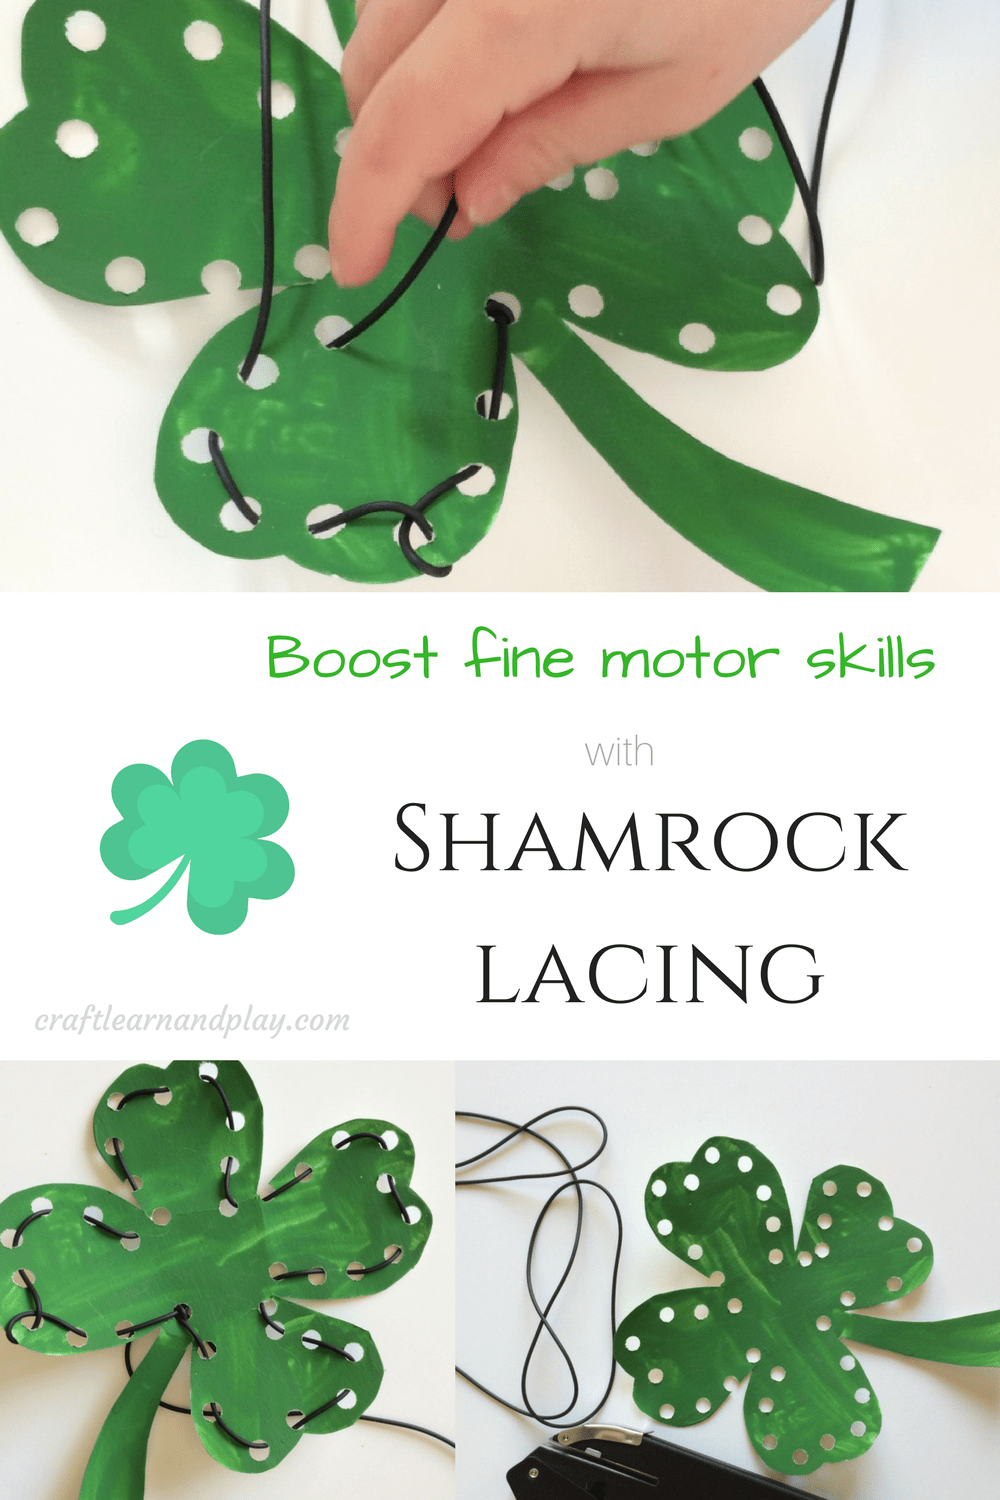 Simple  st patrick's day activities for kids - shamrock lacing toy that you can make on your own. This lacing toy will help your child boost fine motor skills. Ideal for toddler or preschooler. Click to get free printable.